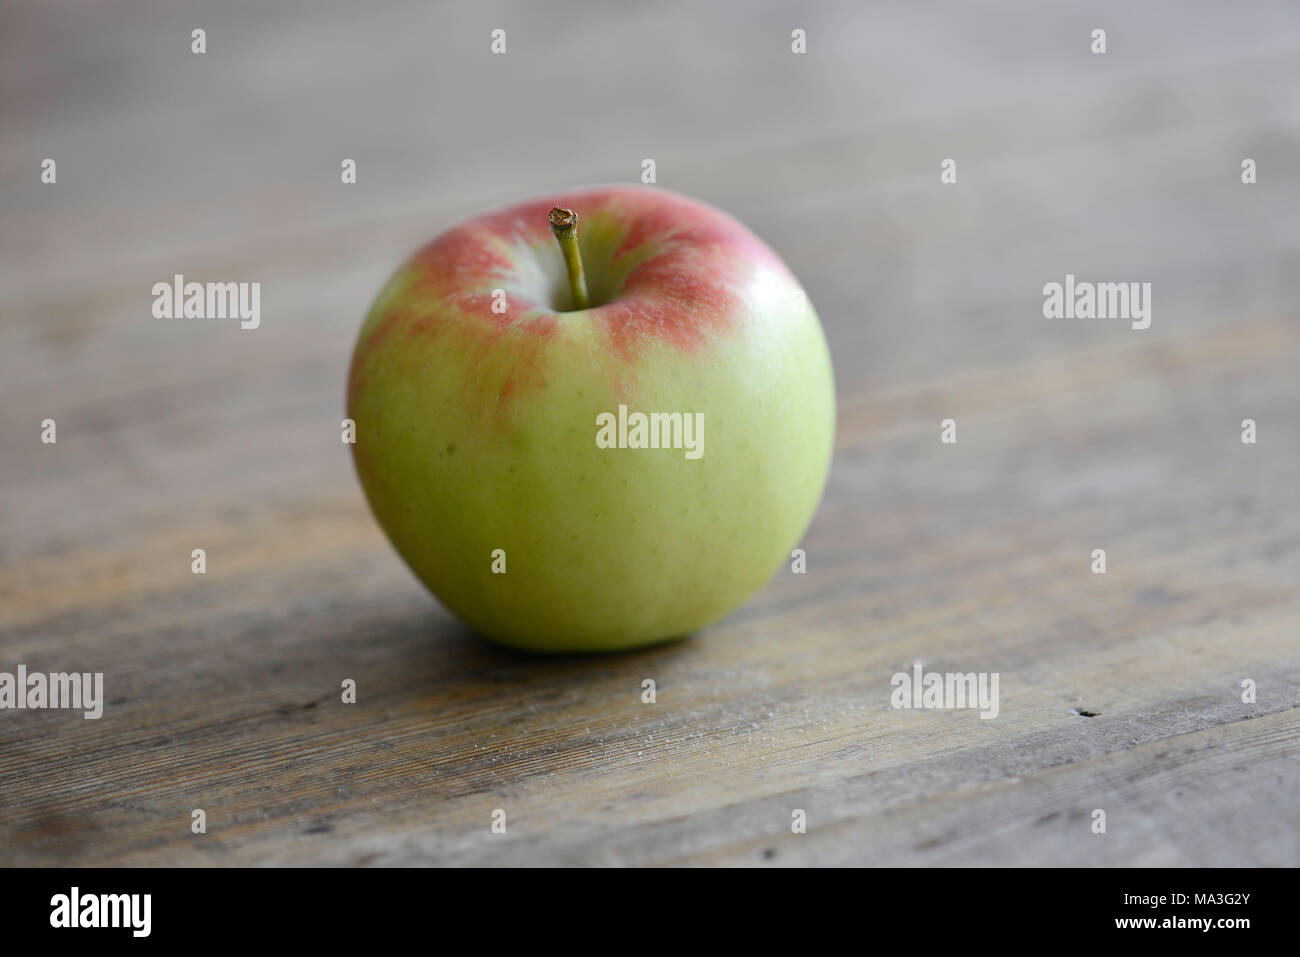 Apple, wooden table, fruit - Stock Image